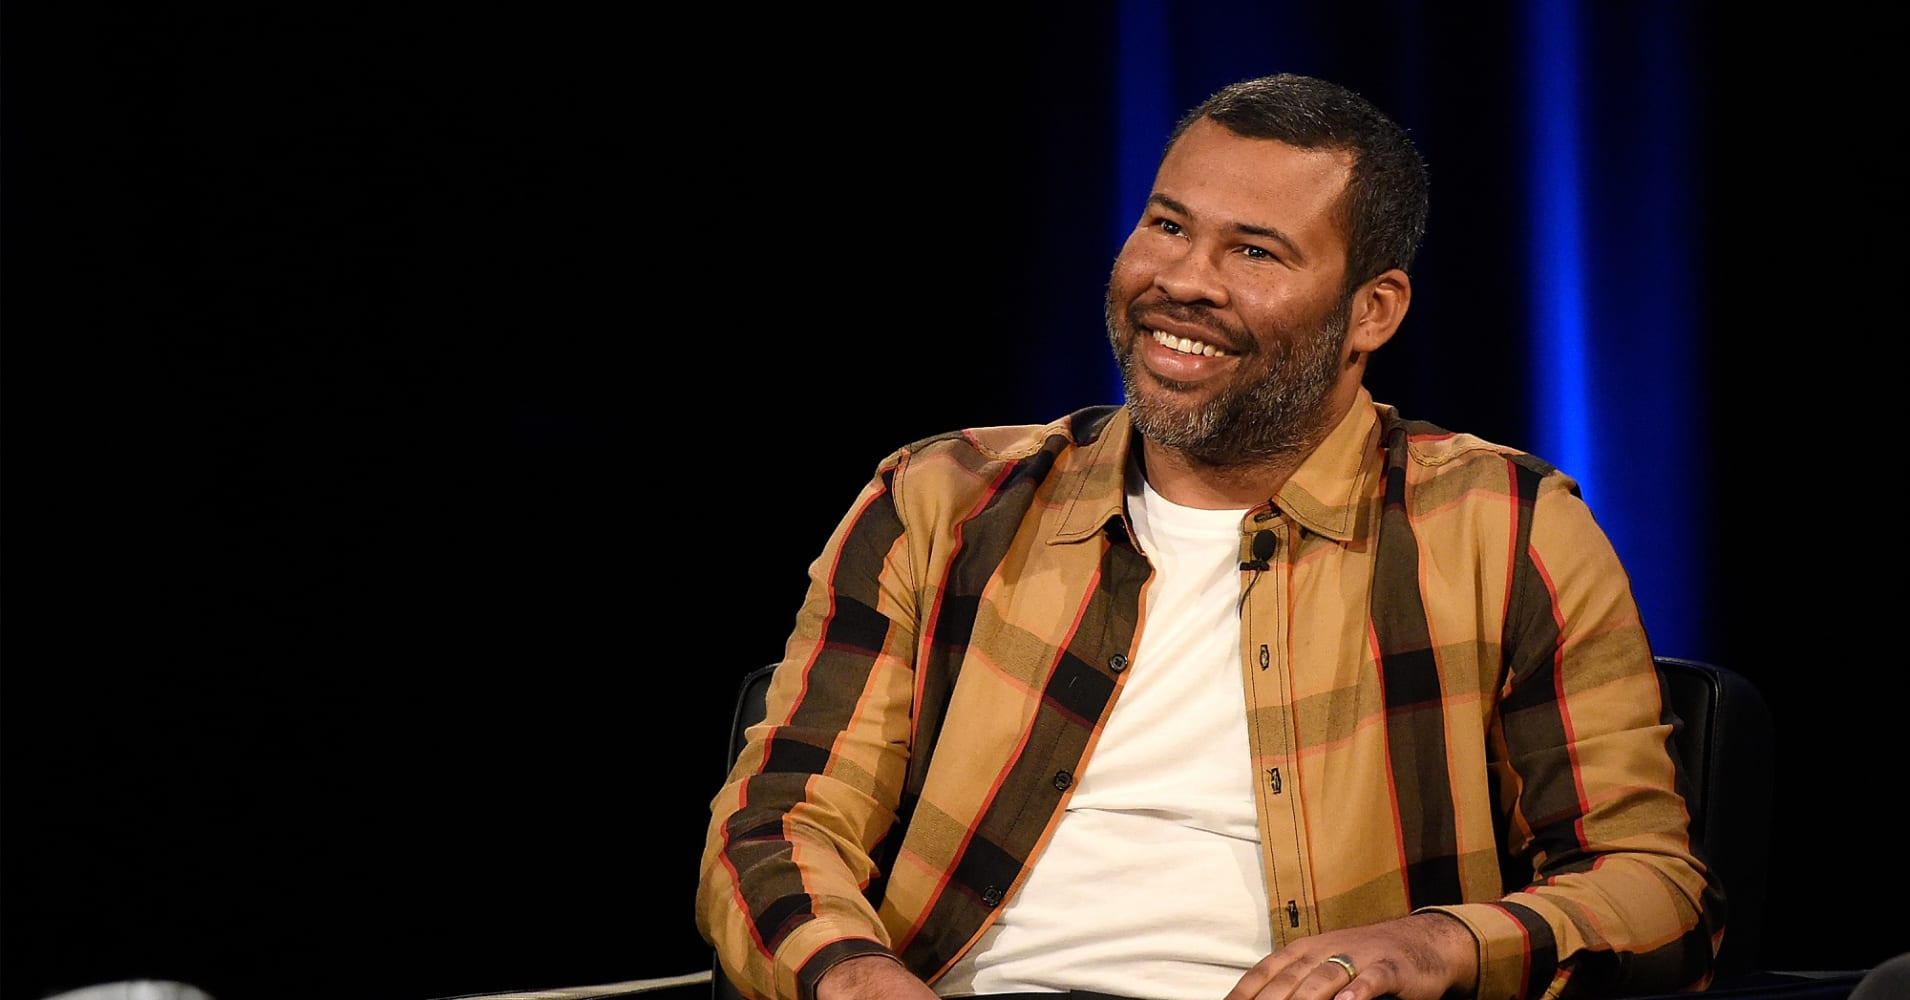 Get Out: Jordan Peele has the opportunity to make Oscars history